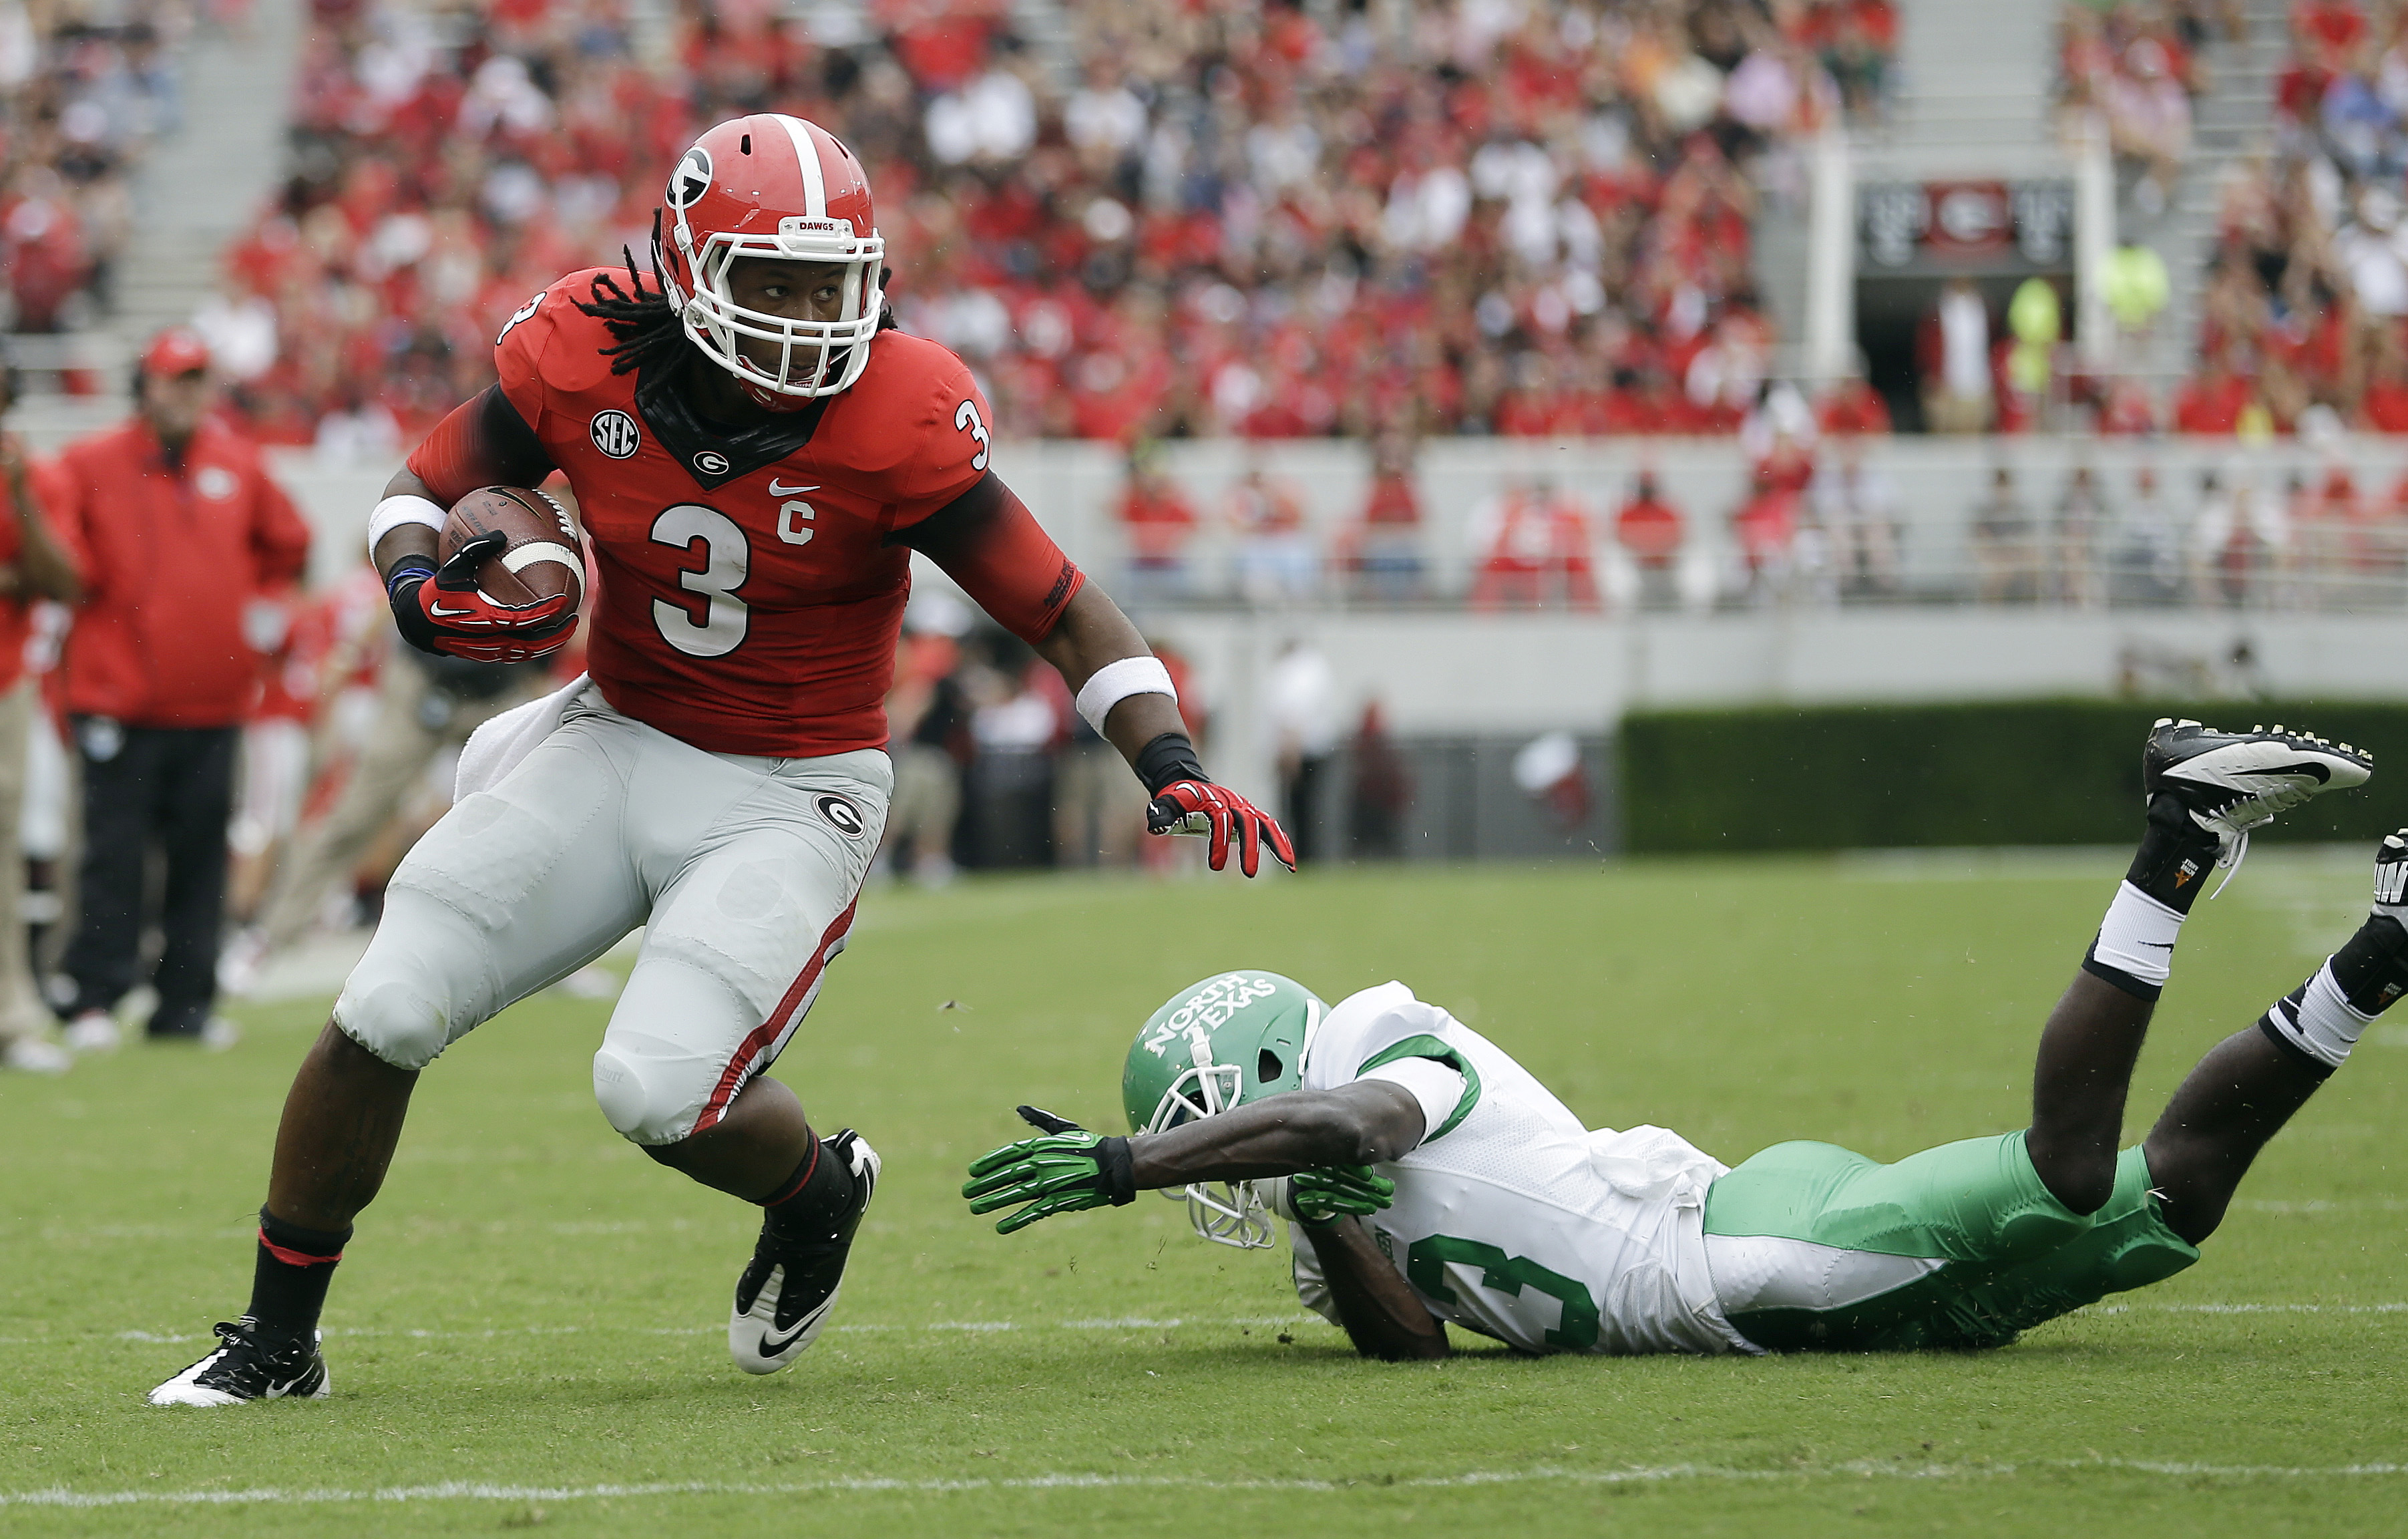 Georgia running back Todd Gurley (3) gets away from North Texas defensive back James Jones (13) as he runs for a touchdown in the first half of an NCAA college football game Saturday, Sept. 21, 2013 in Athens, Ga. (AP Photo/John Bazemore)